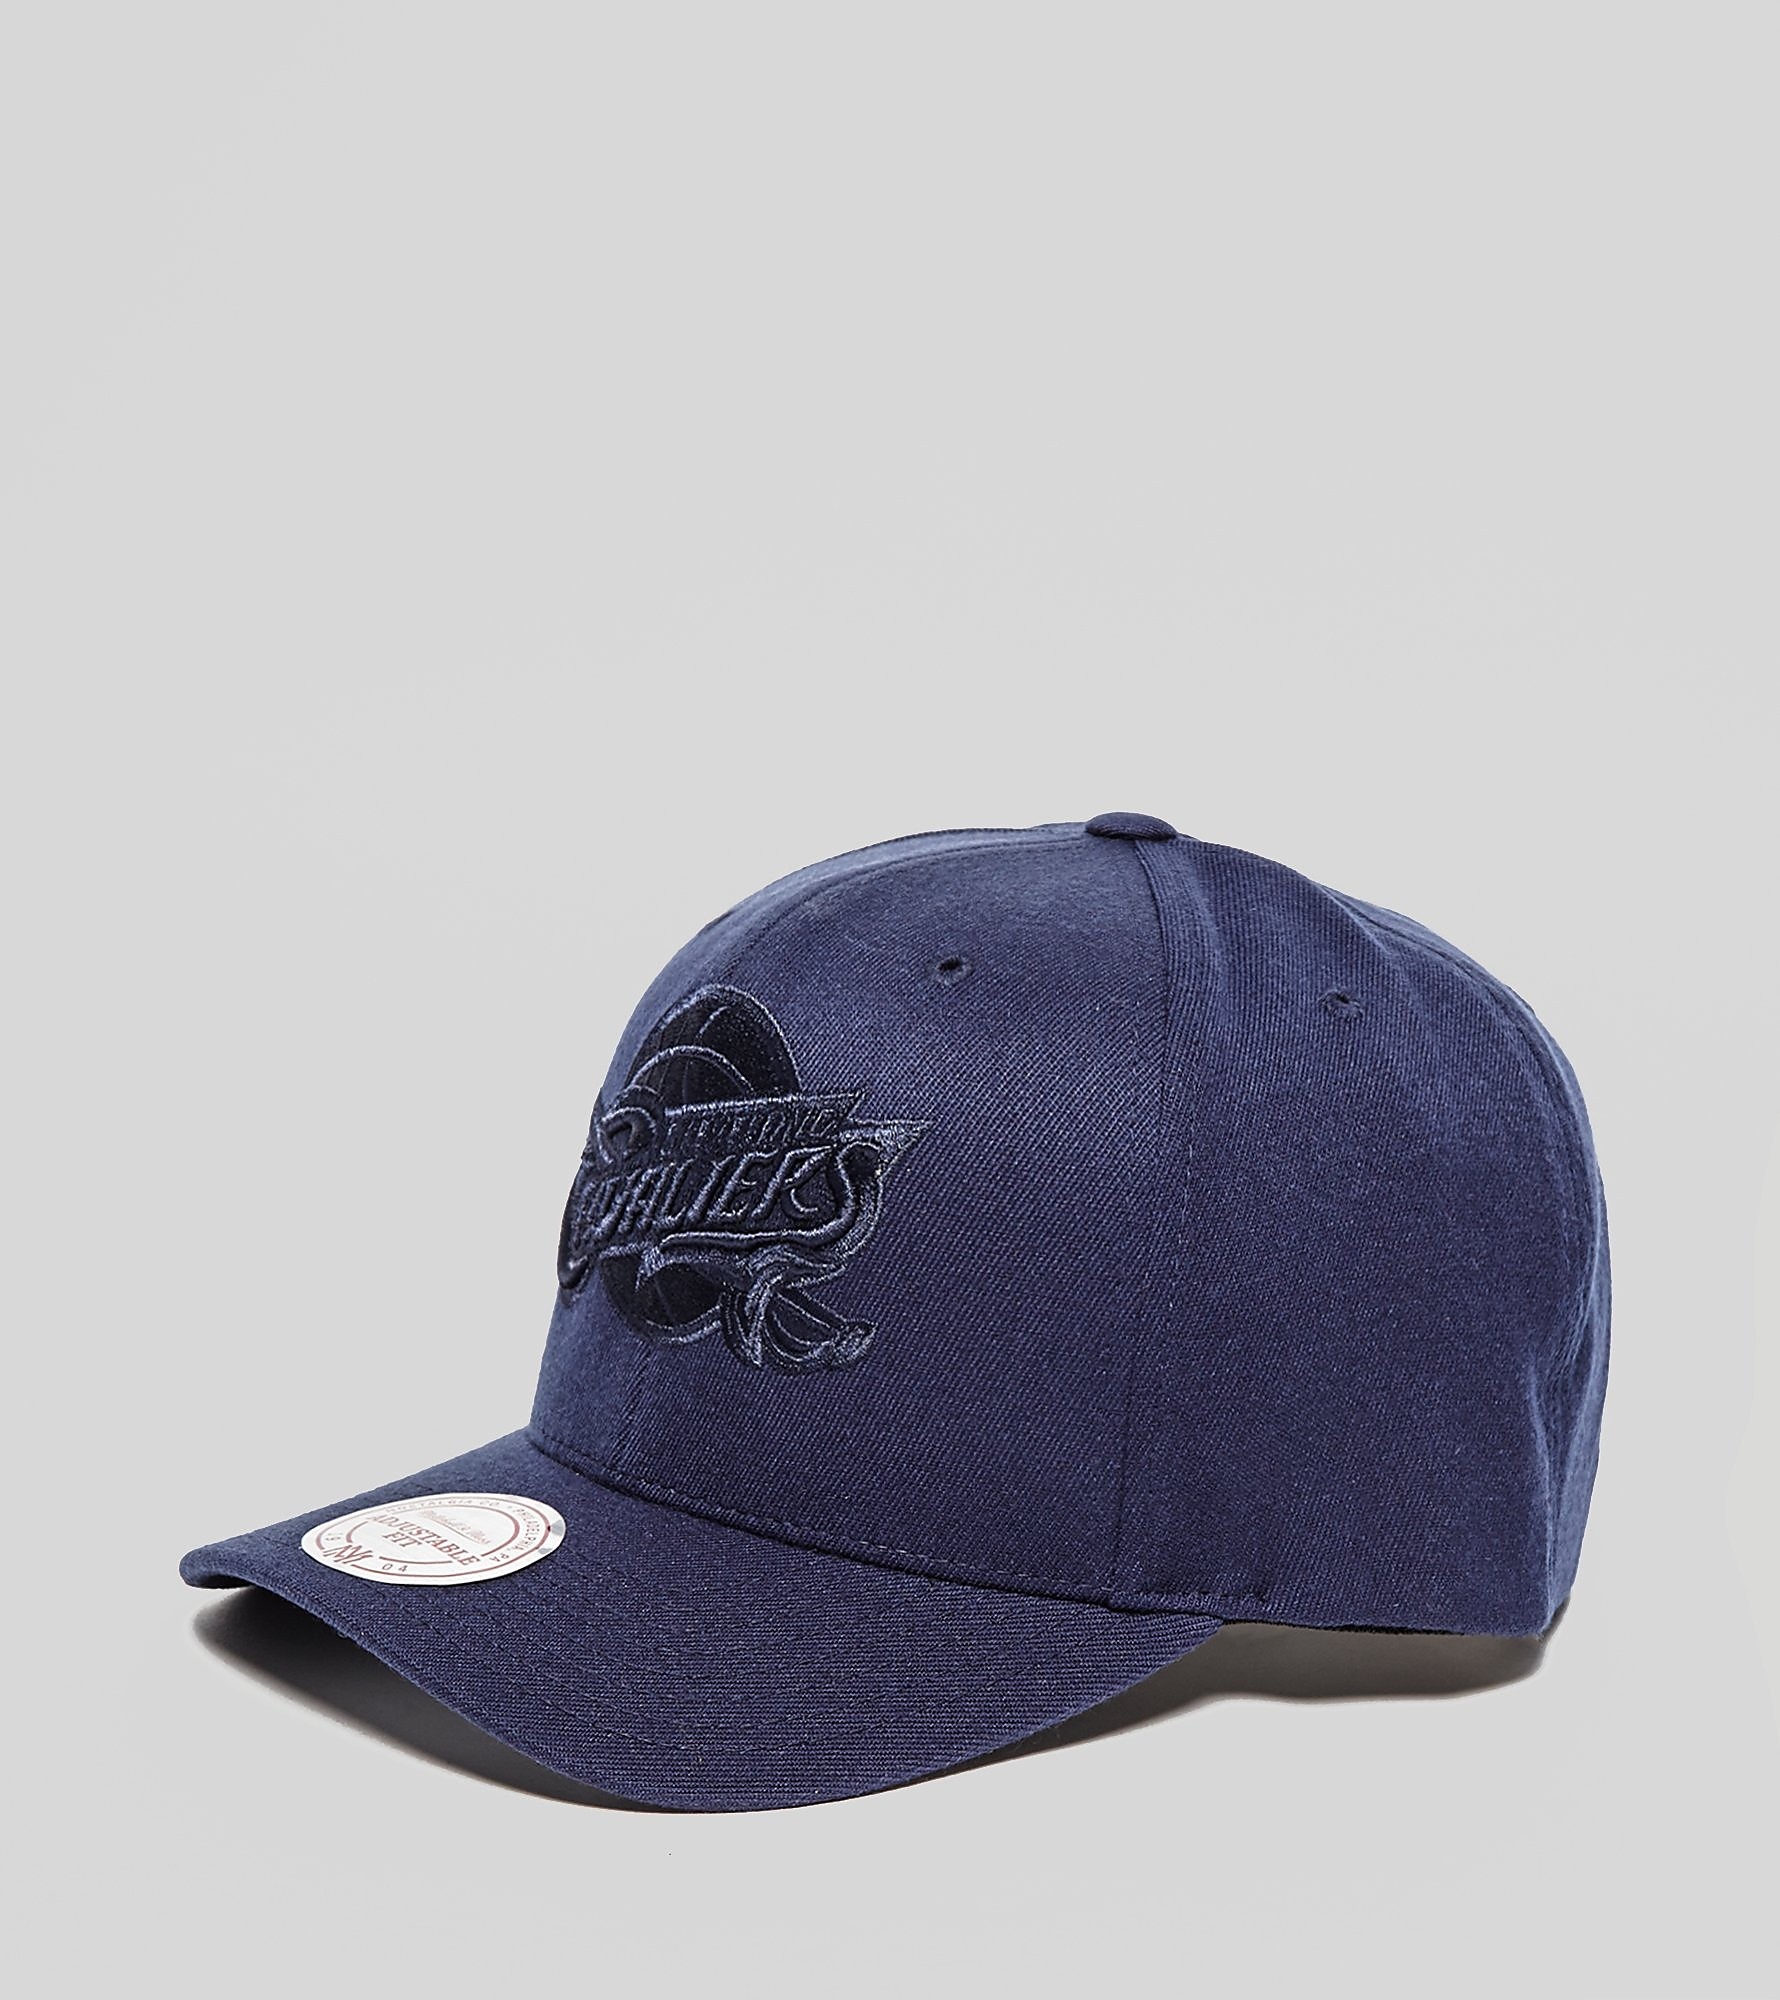 Mitchell & Ness Cleveland Cavaliers Curved Snapback Cap